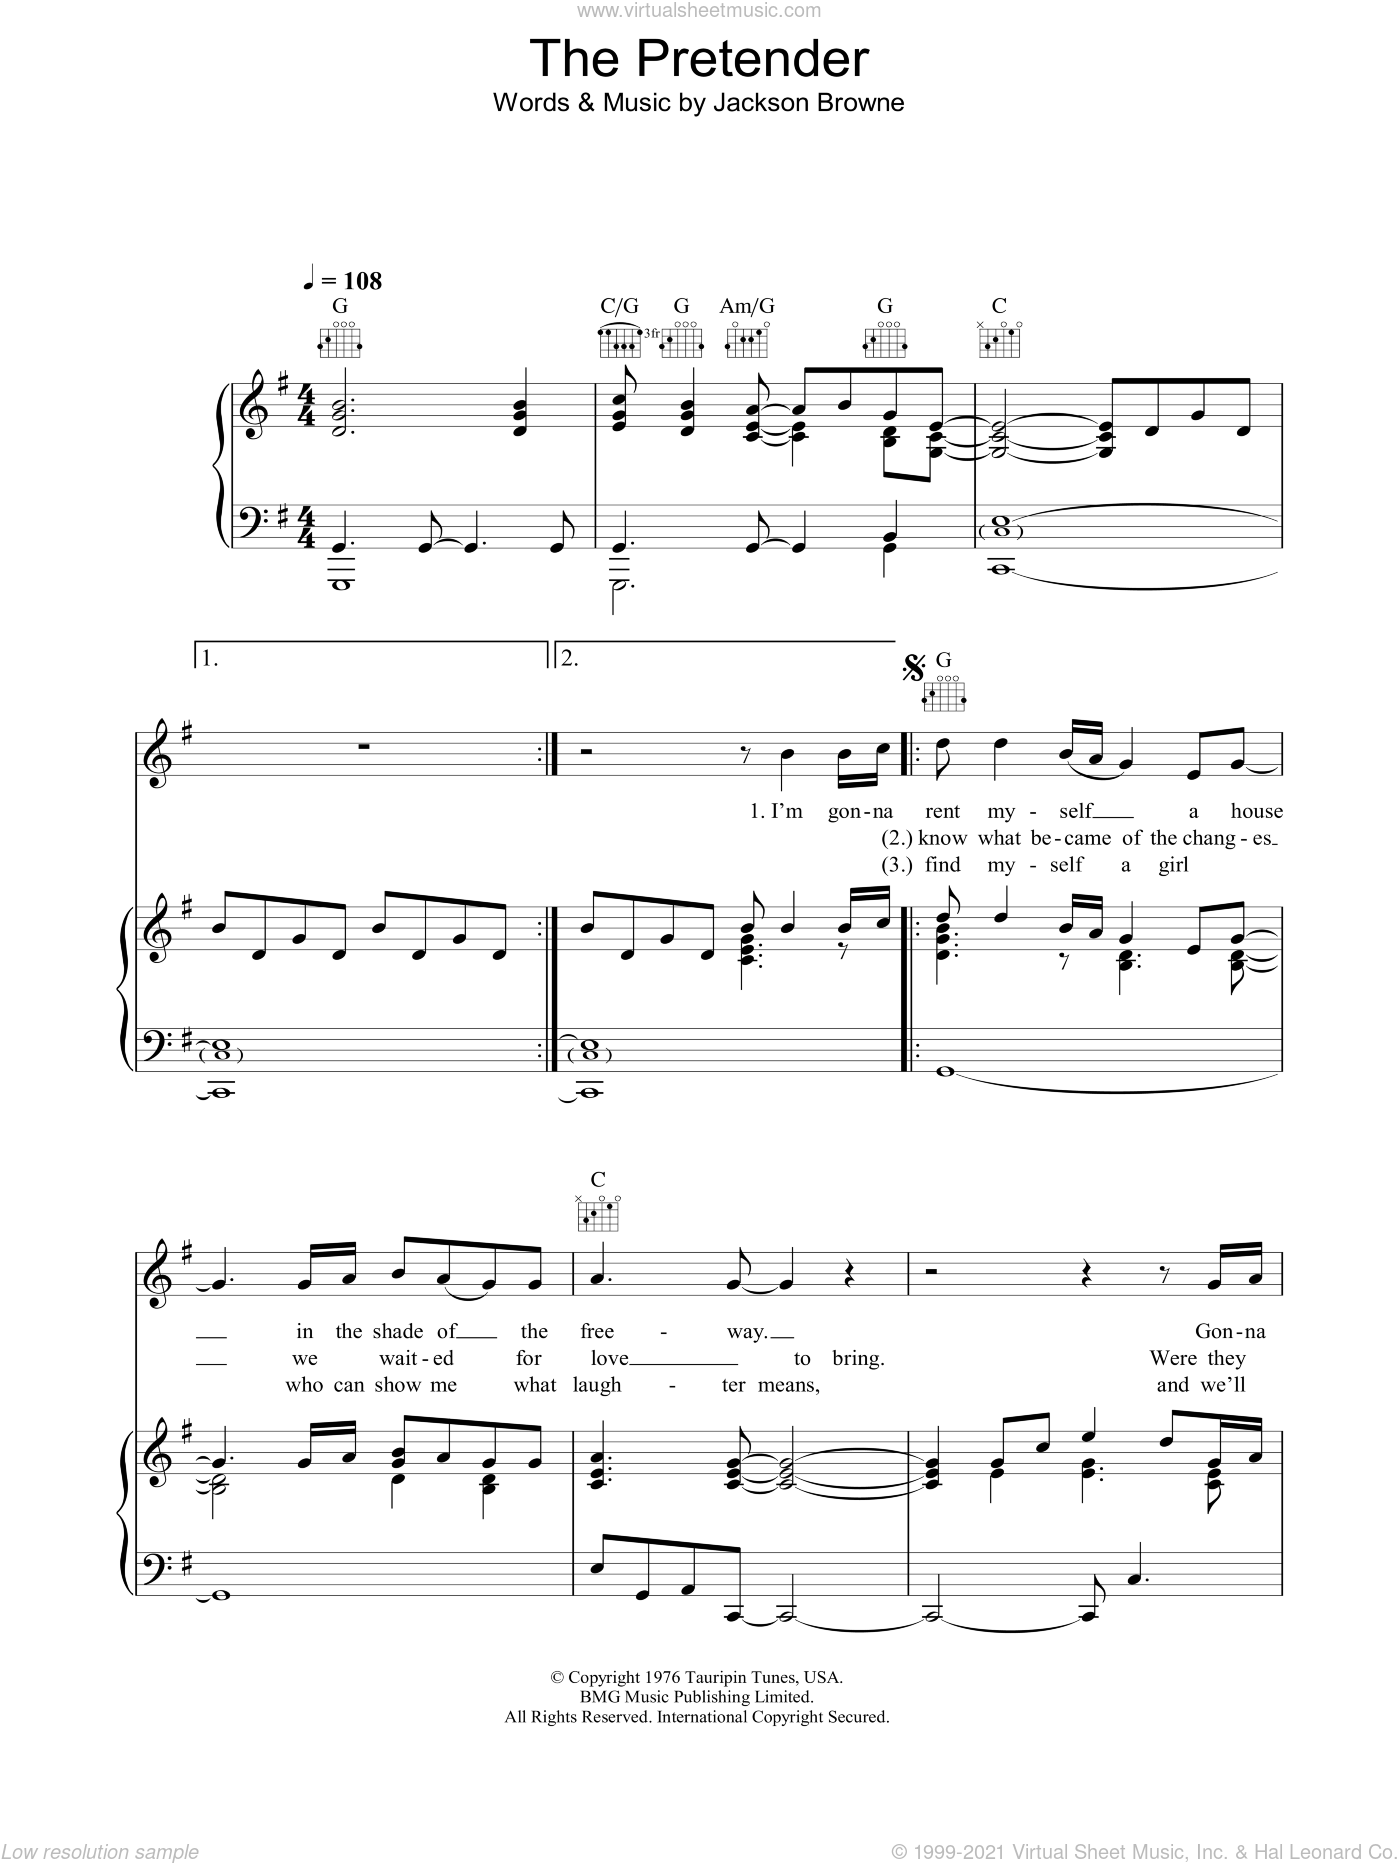 The Pretender sheet music for voice, piano or guitar by Jackson Browne, intermediate skill level